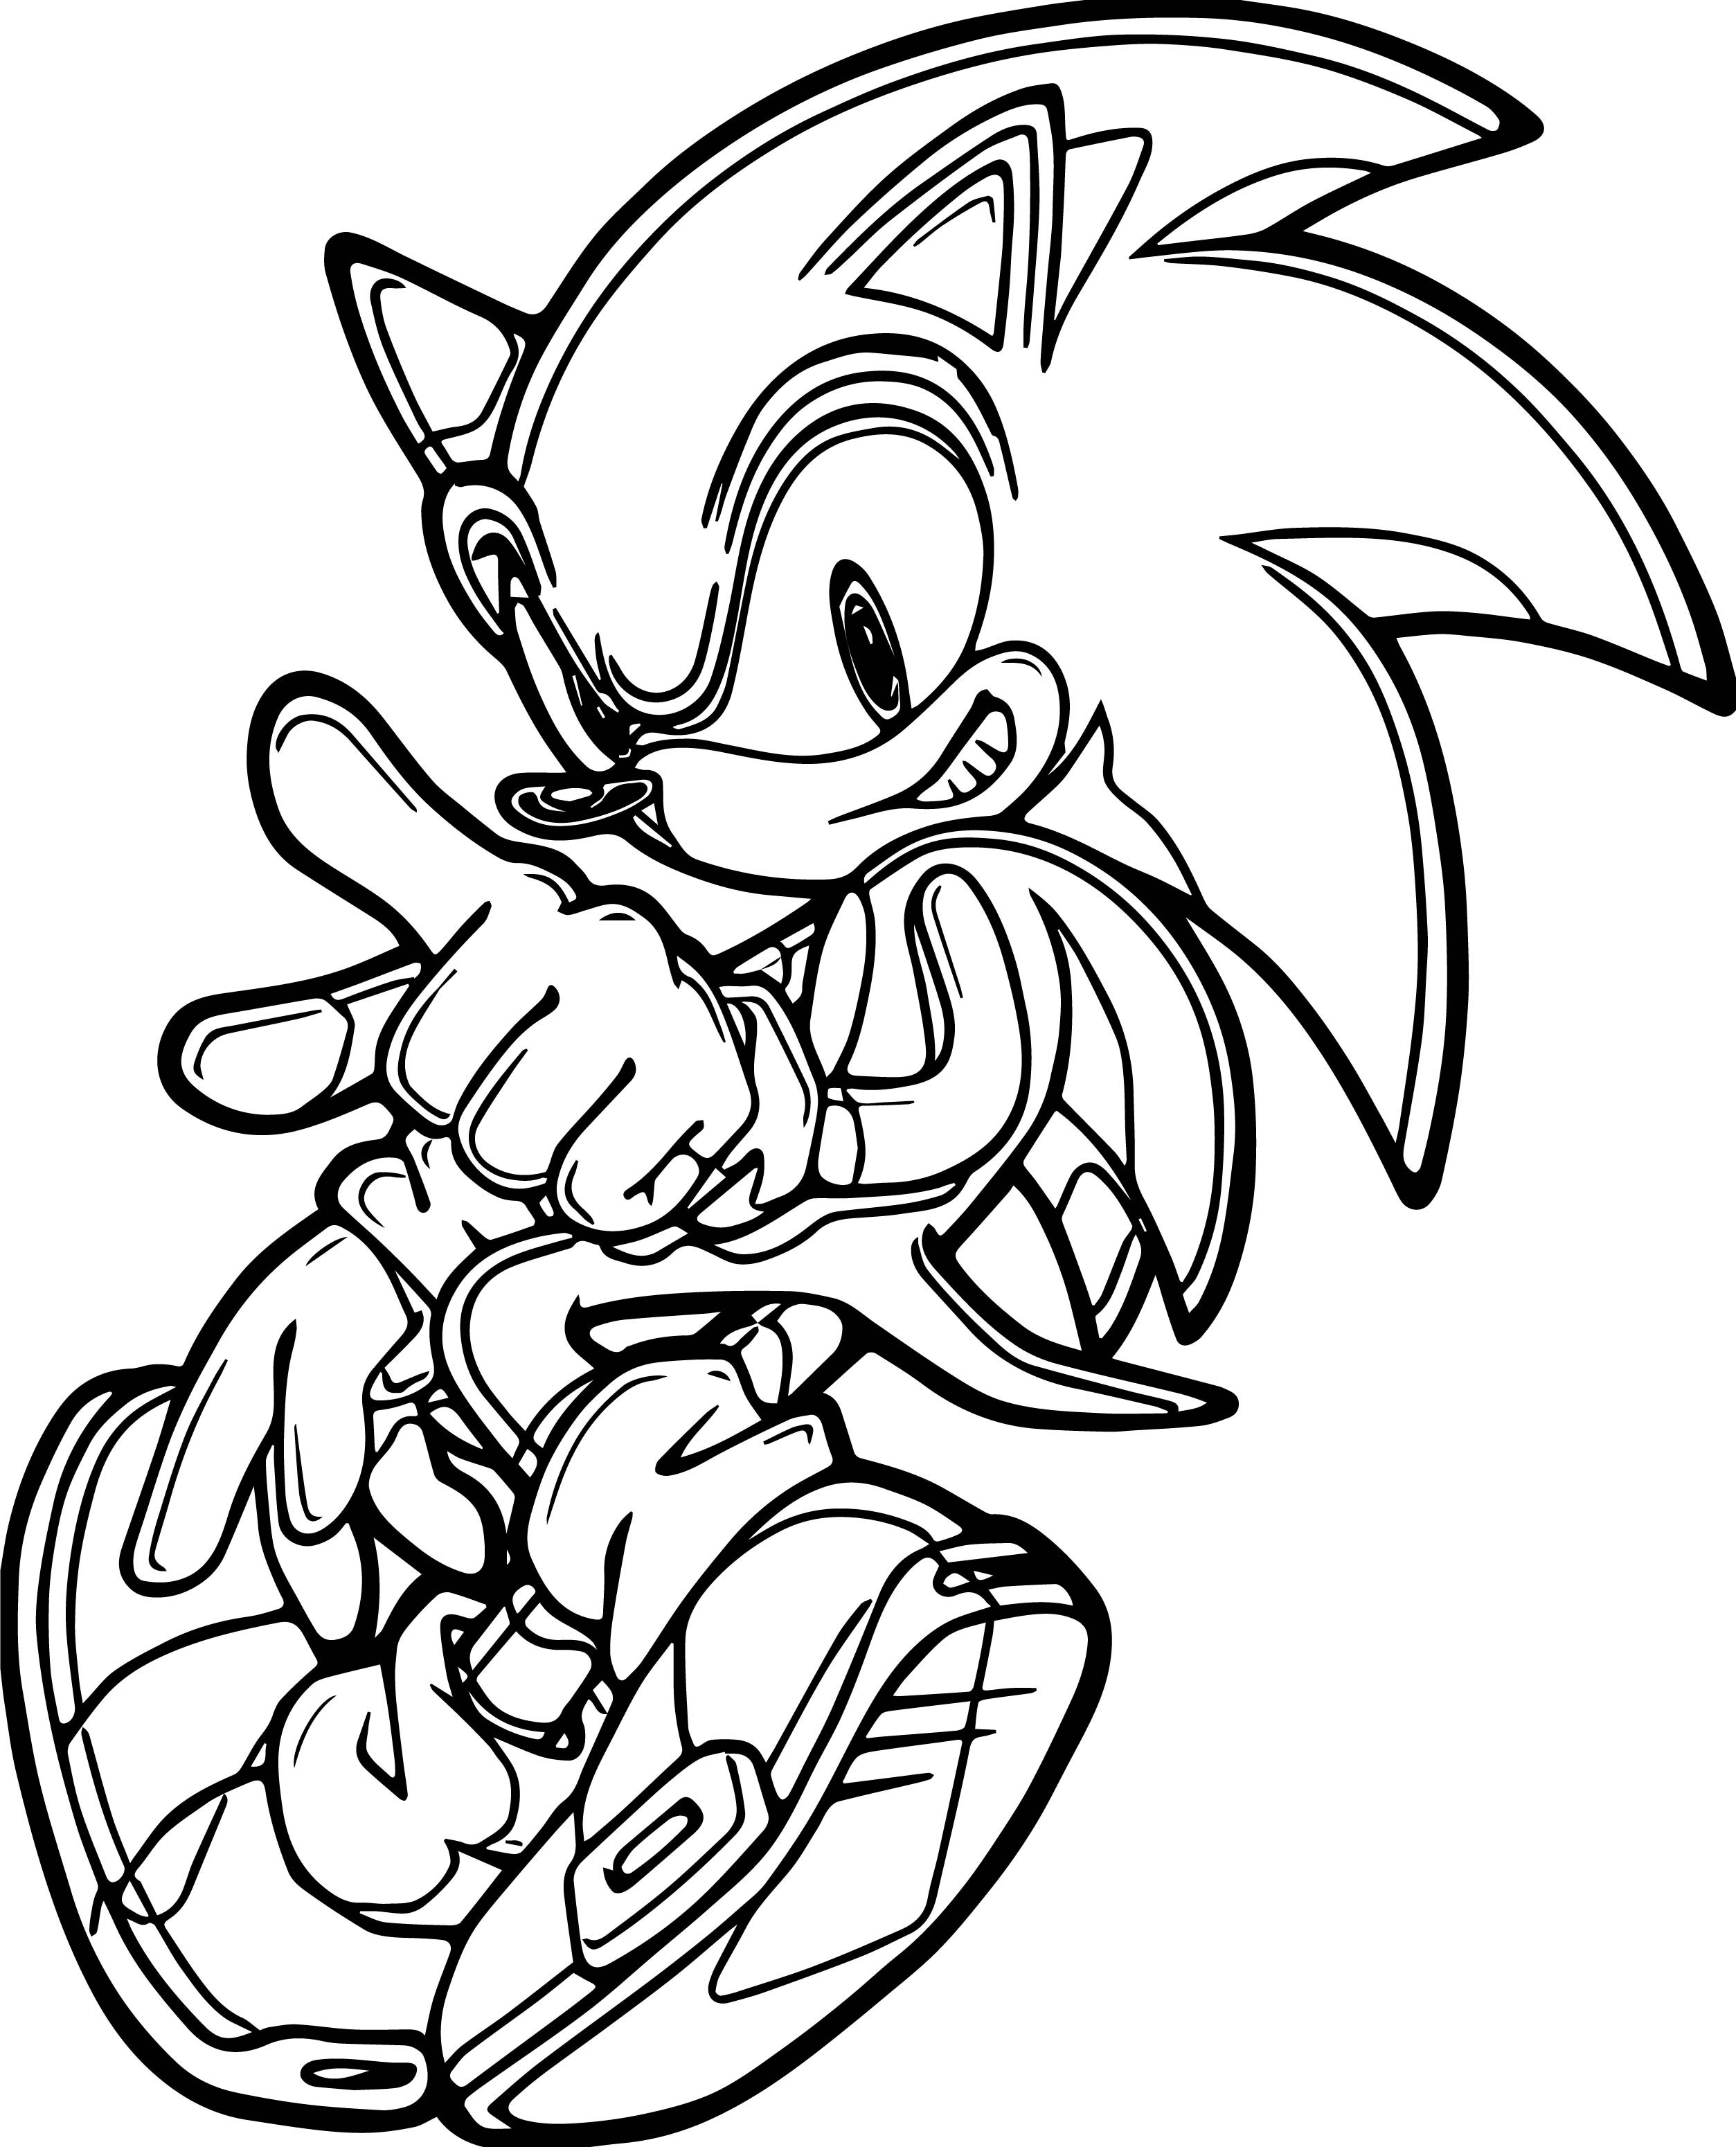 Sonic The Hedgehog Coloring Pages - Learny Kids